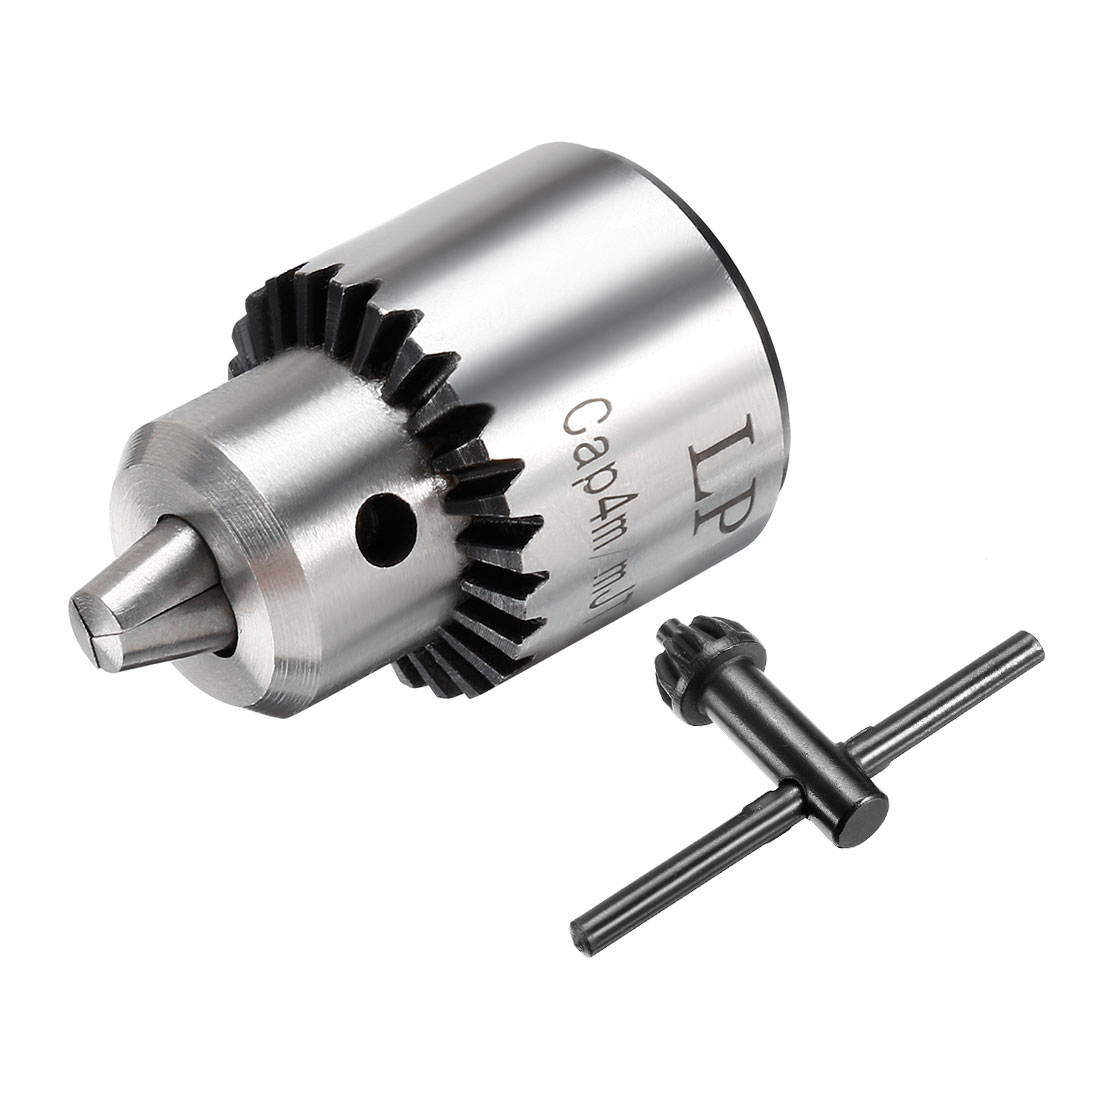 JT0 Mounted 0.3-4mm Capacity Keyed Spanner Drill Chuck w Key